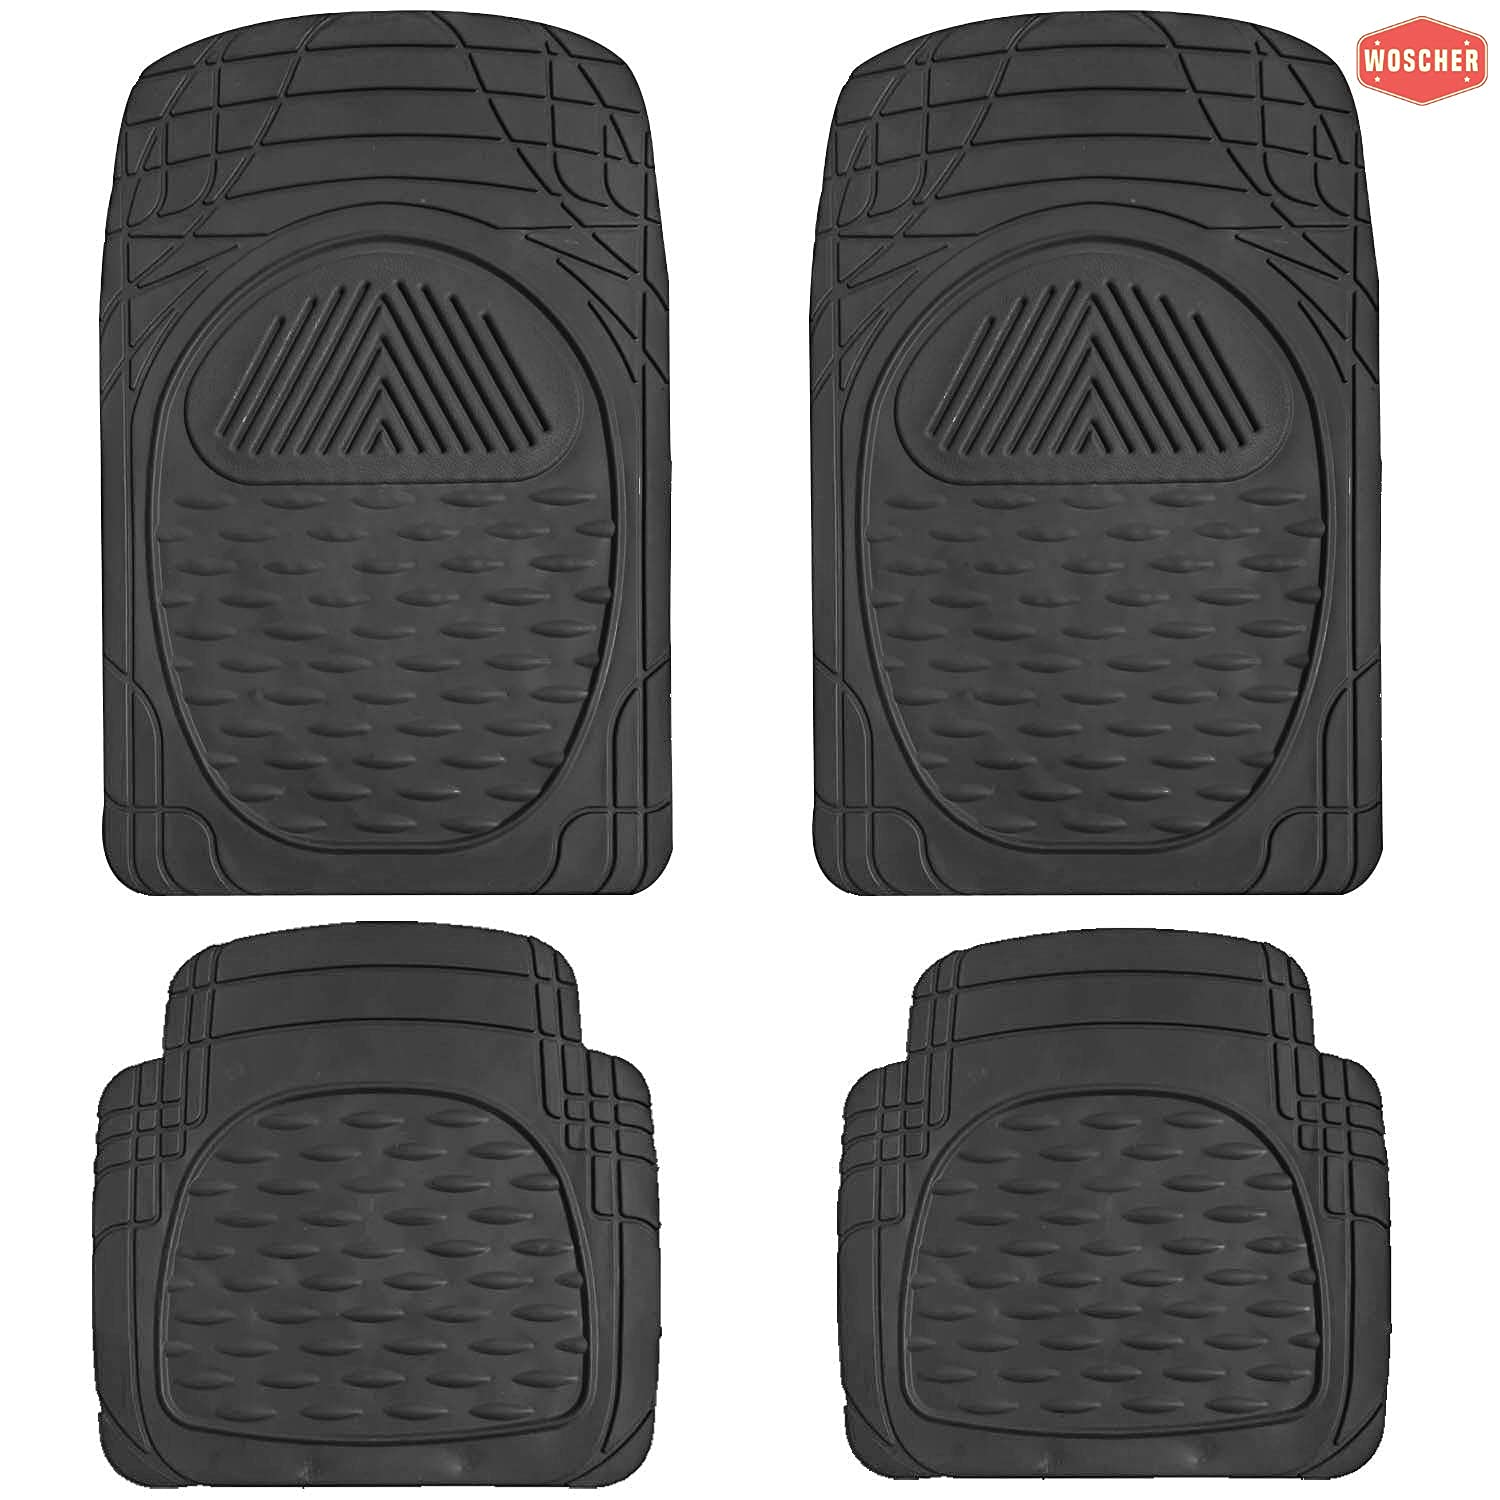 woscher-6204-flex-tough-all-season-odorless-rubber-floor-car-mat-for-car-suv-universal-self-cut-to-perfectly-fit-black